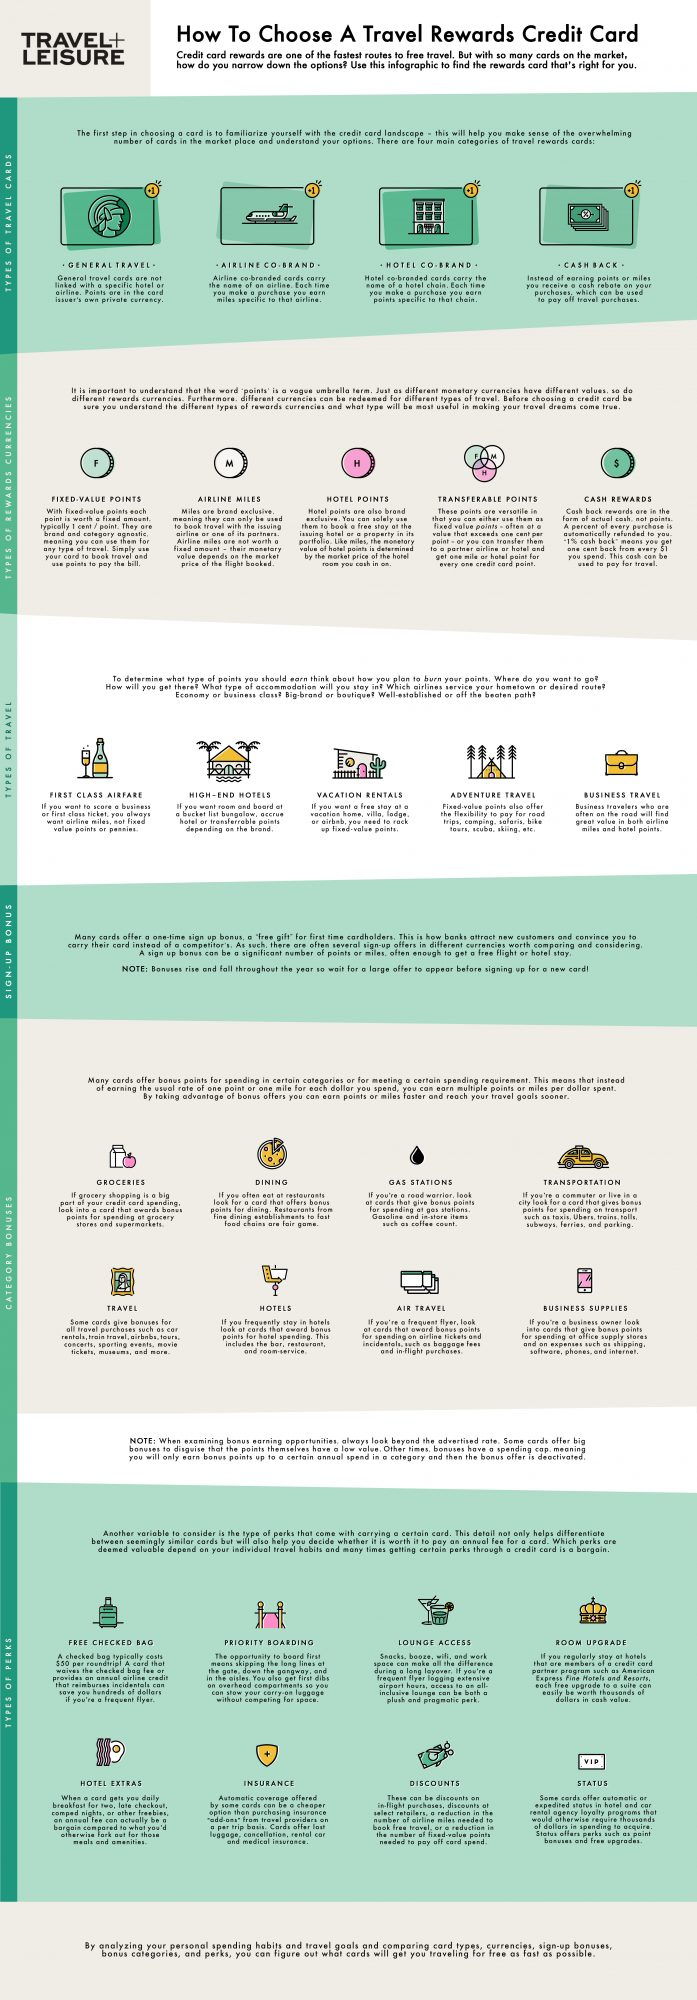 Travel Rewards Credit Cards Infographic by Mara Sofferin